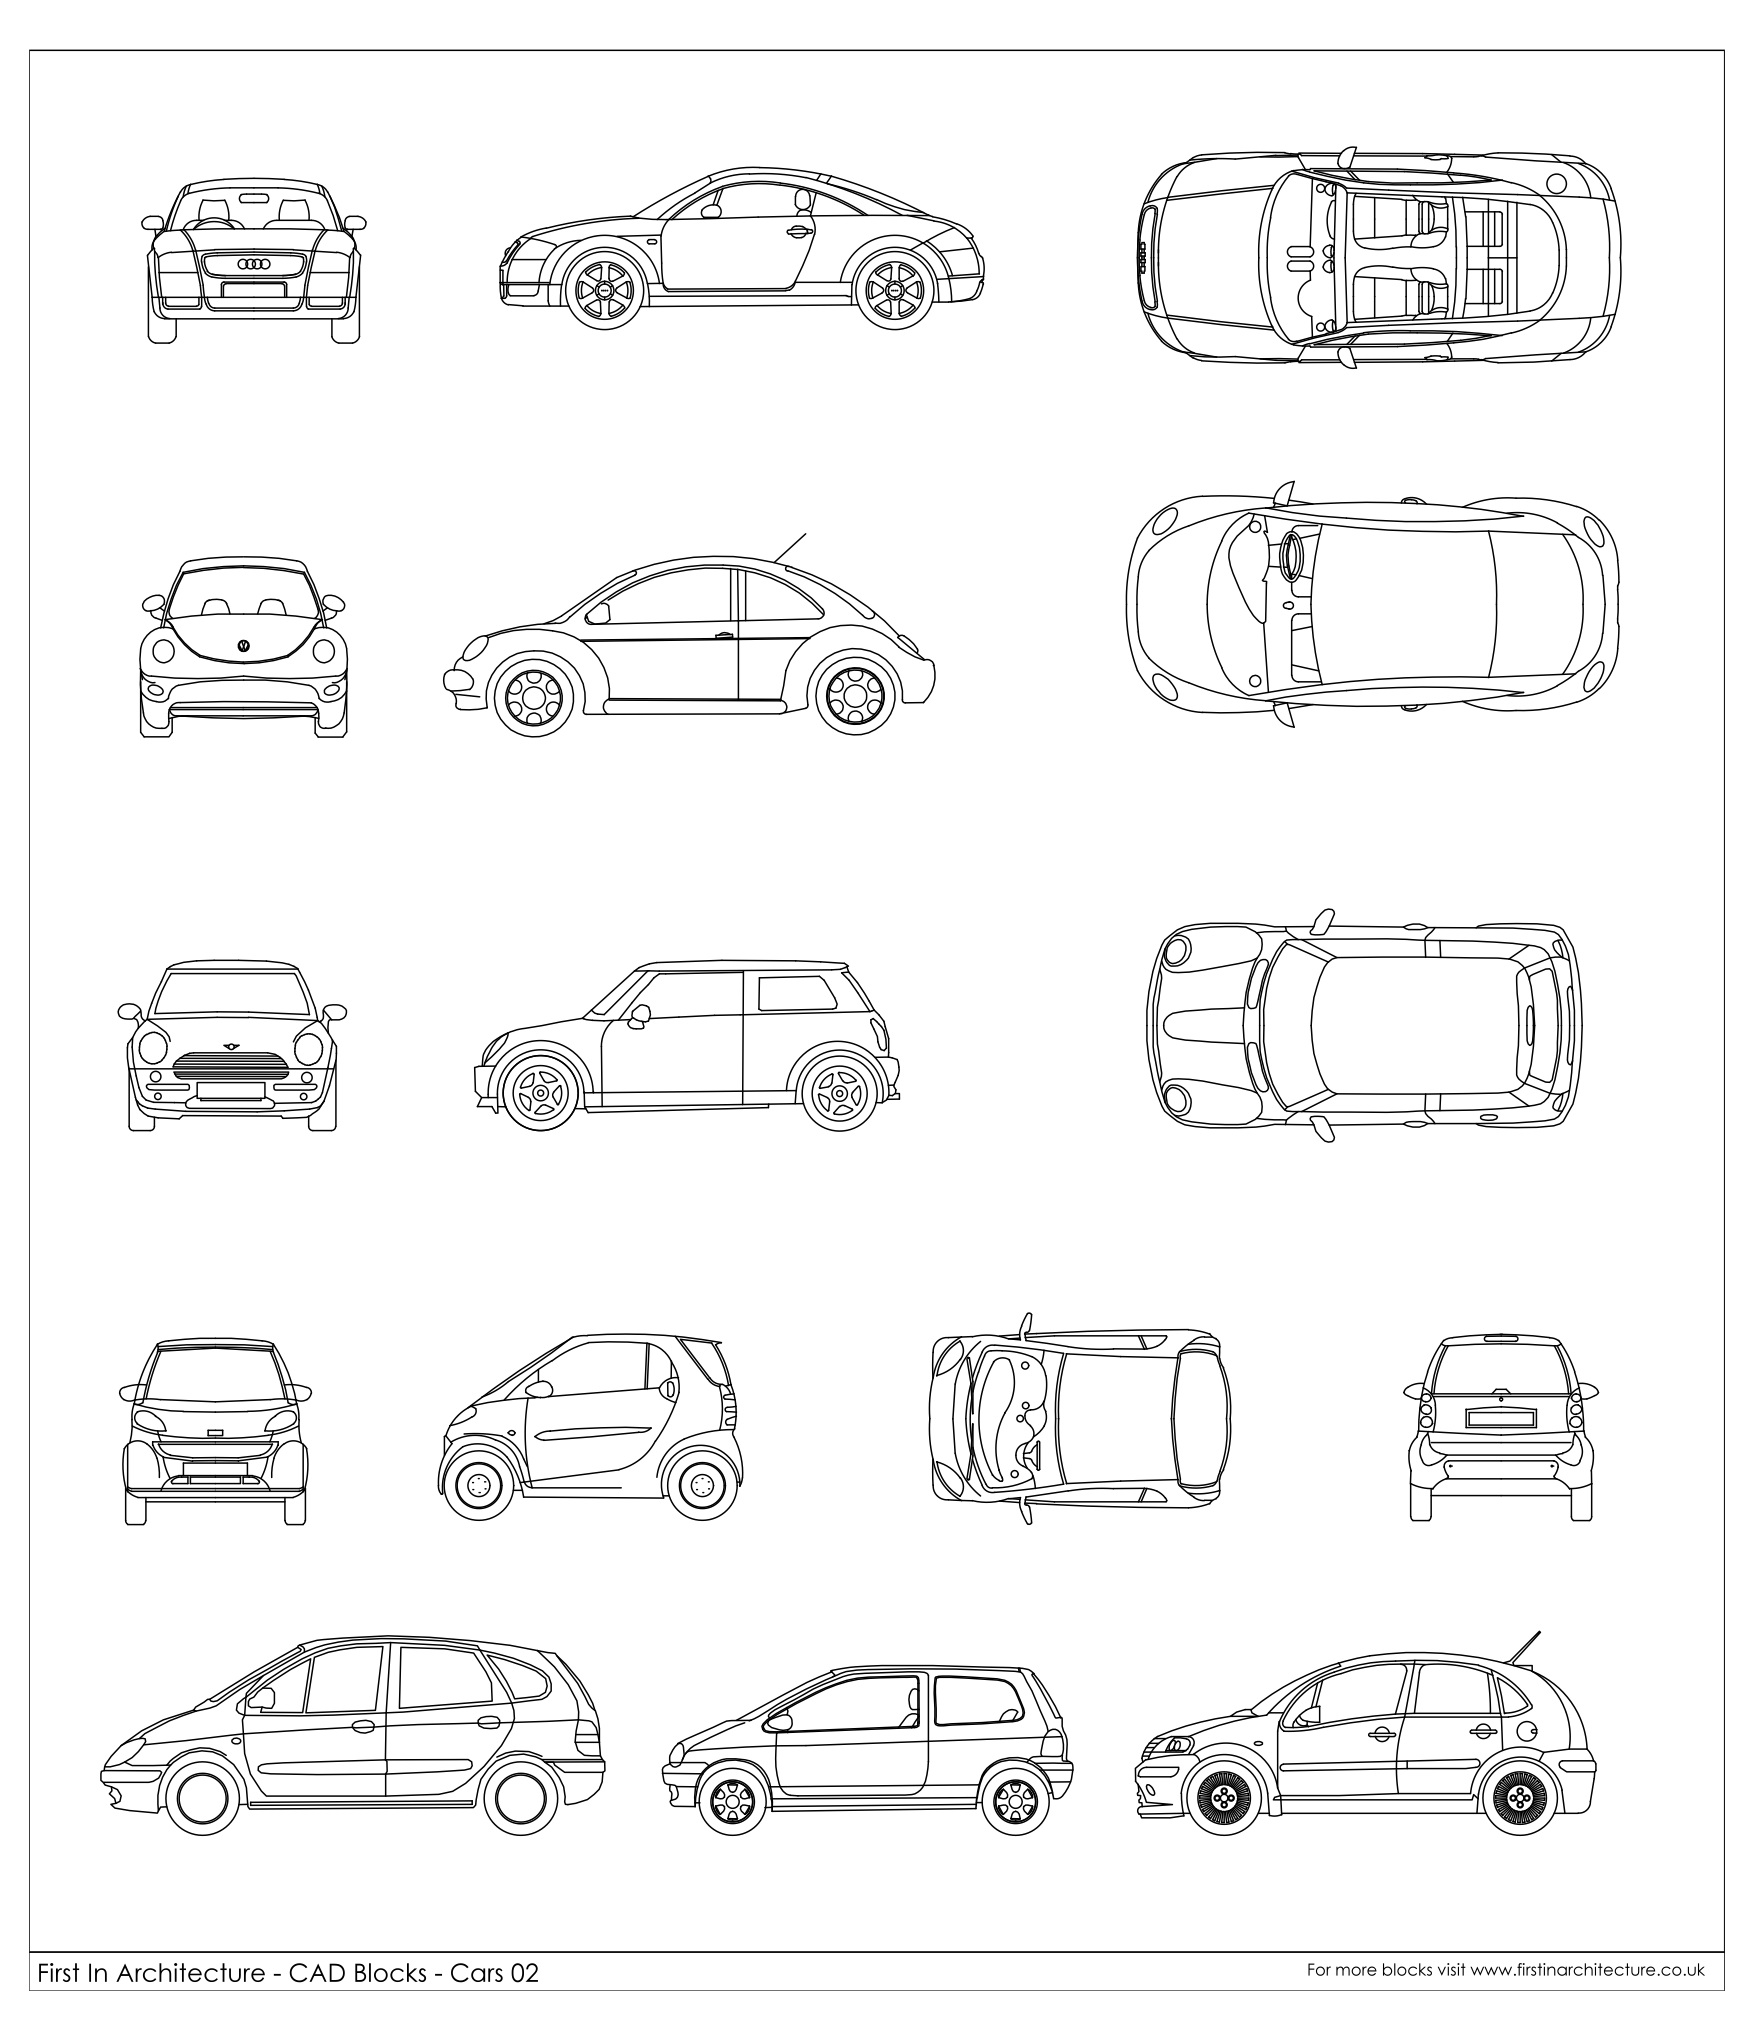 Cad blocks cars 02 for Free architectural drawing program